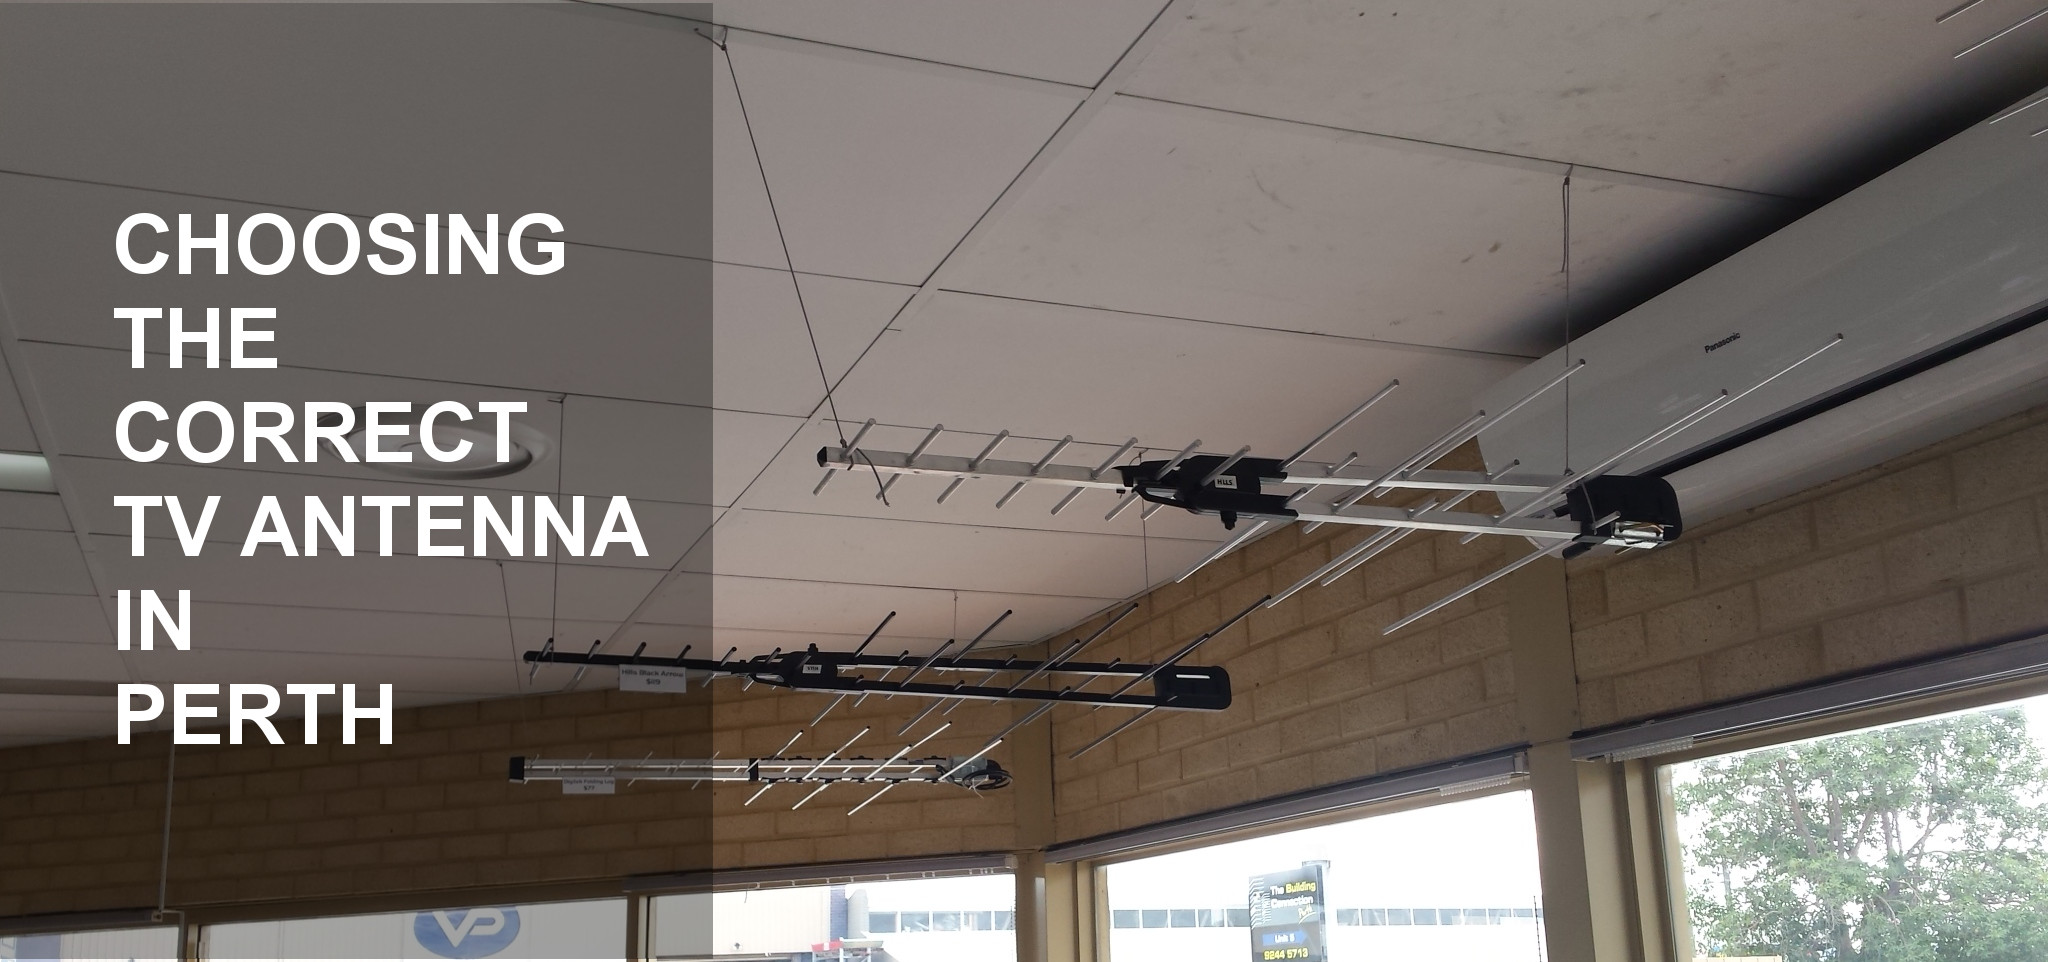 Choosing the Correct TV Antenna in Perth